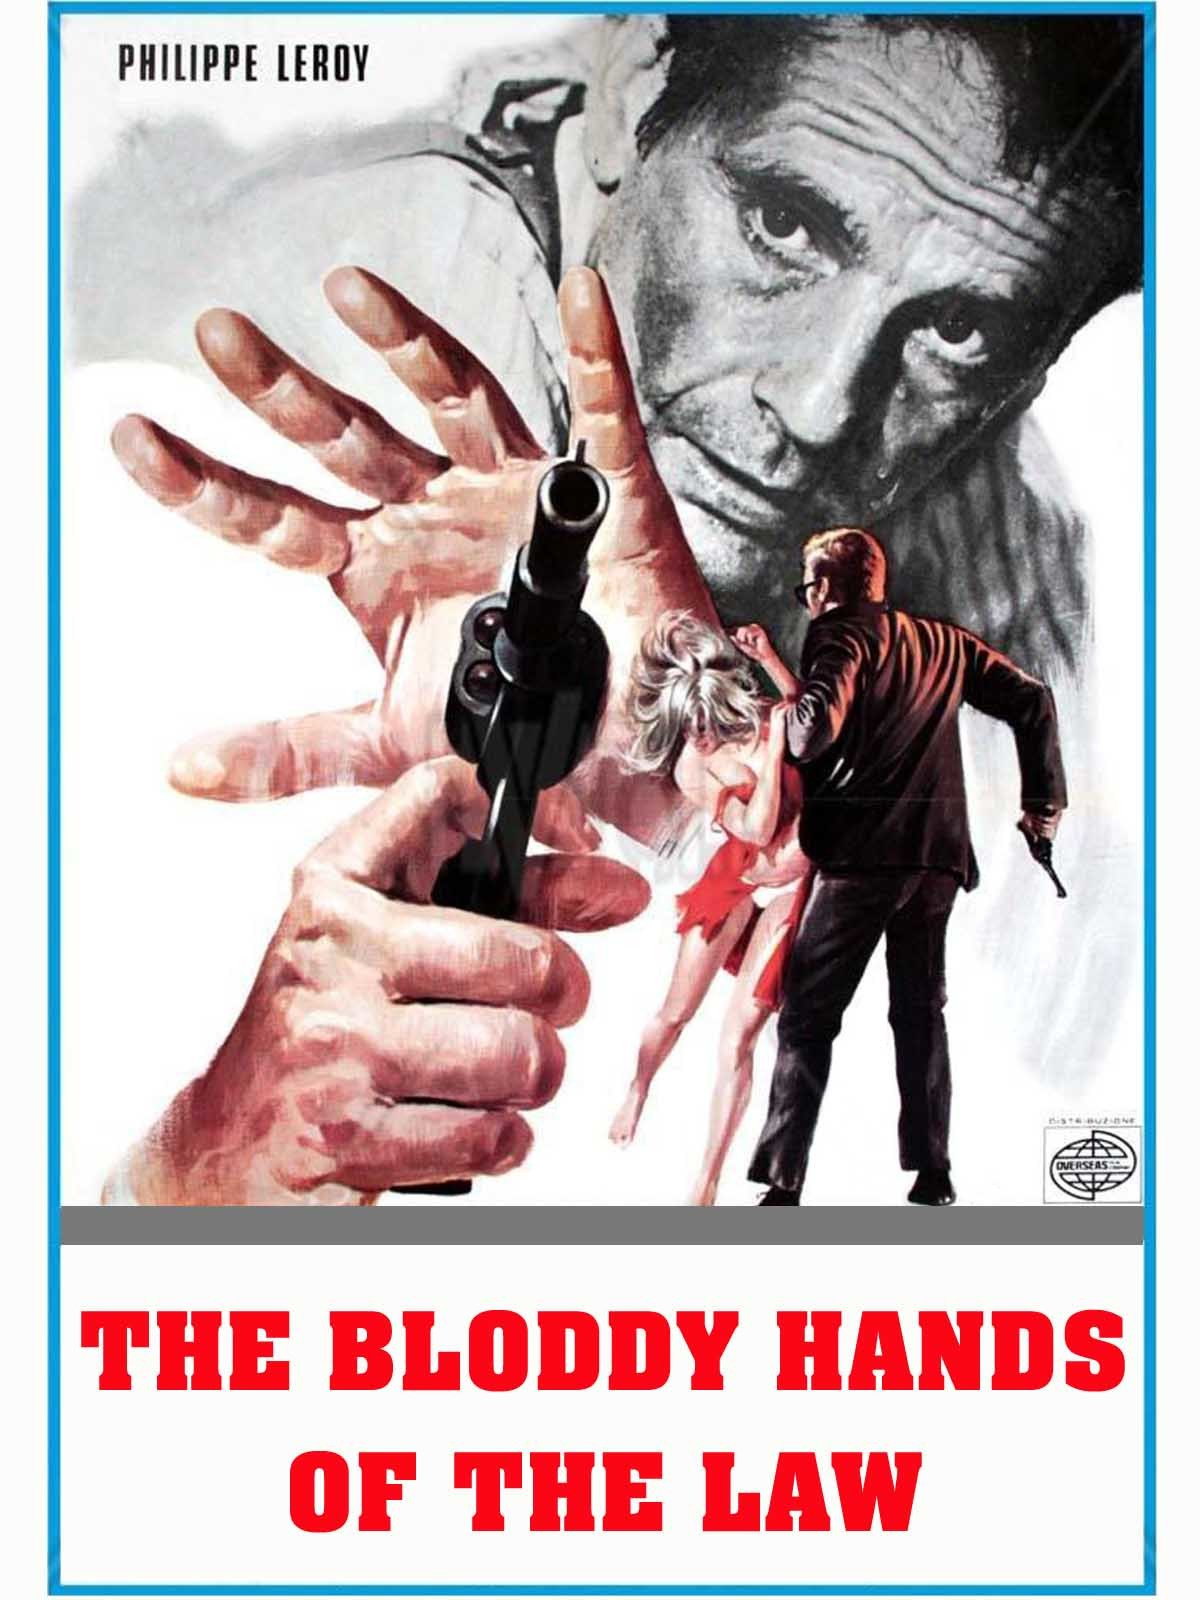 The Bloody Hands Of The Law